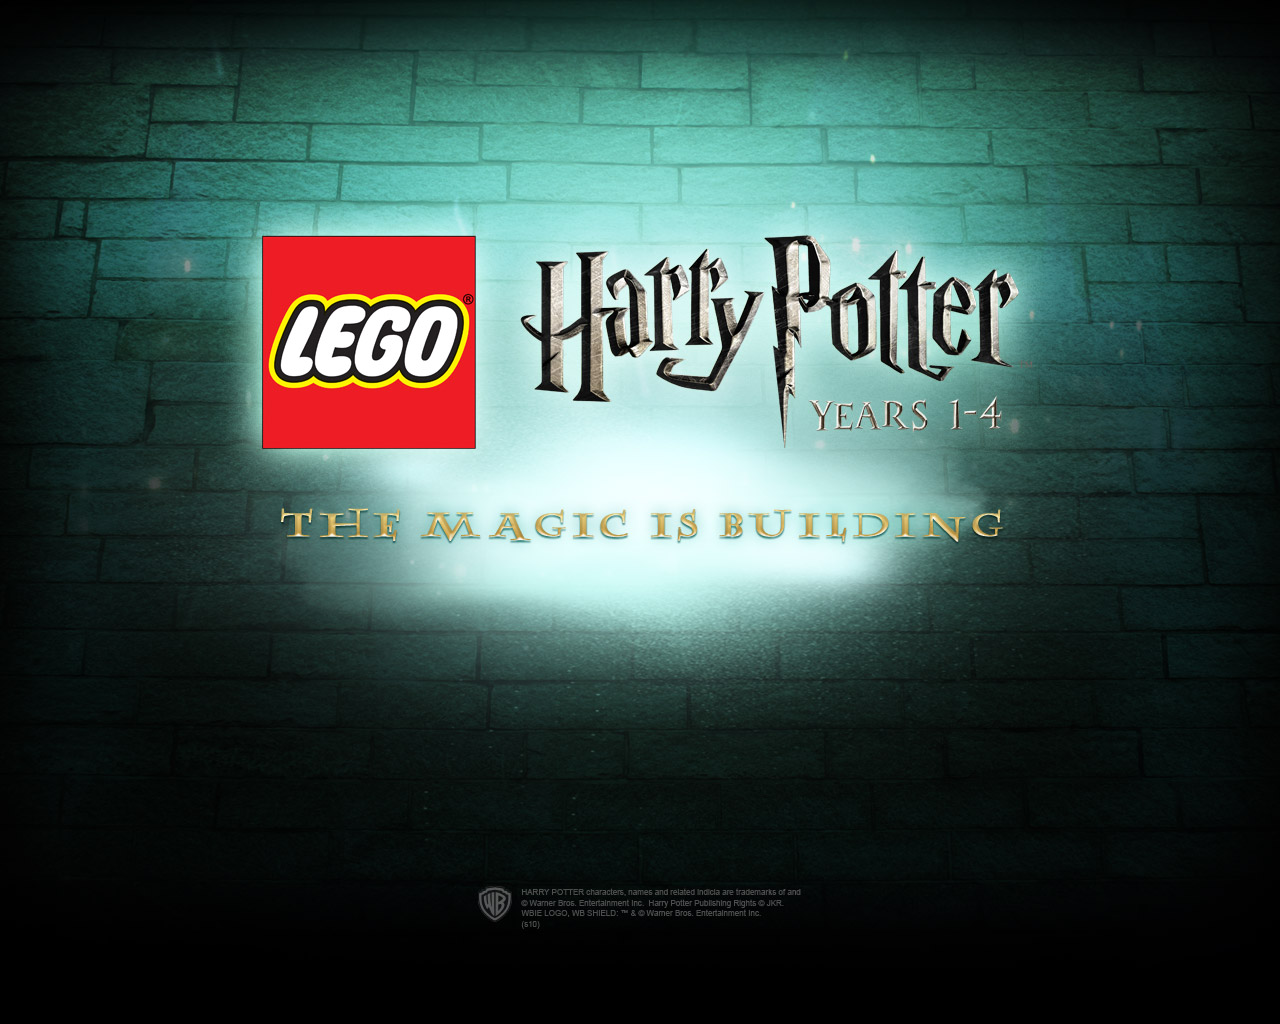 Beautiful Wallpaper Harry Potter Logo - lego-harry-potter-years-1-4-wallpaper  Perfect Image Reference_76755.jpg